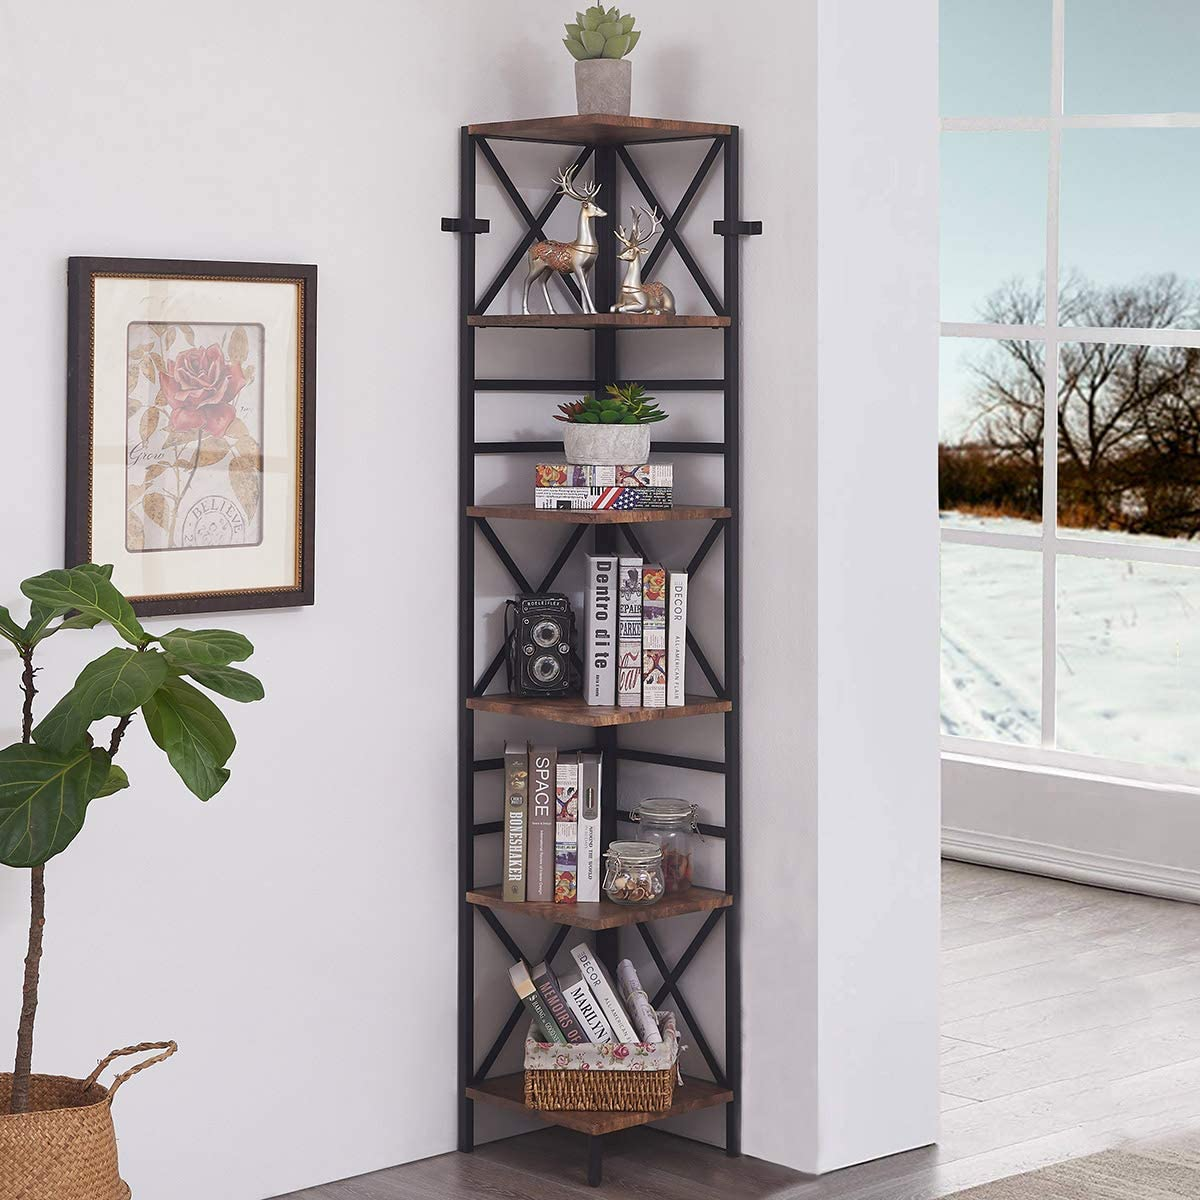 Homissue 6 Tier Industrial Corner Shelf Unit, Tall Bookcase Storage Display Rack for Home Office, Rustic Brown